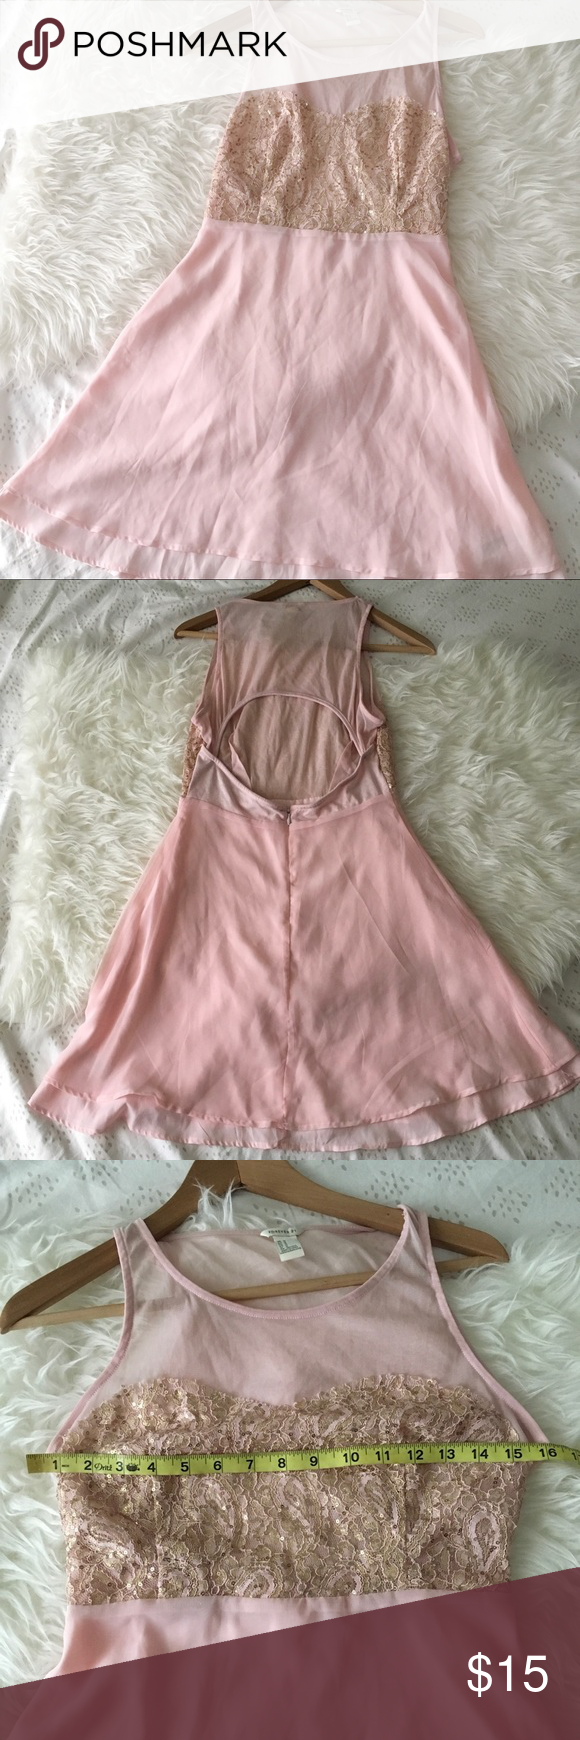 Pink flowy dress with gold sequins bellaus poshmark closet